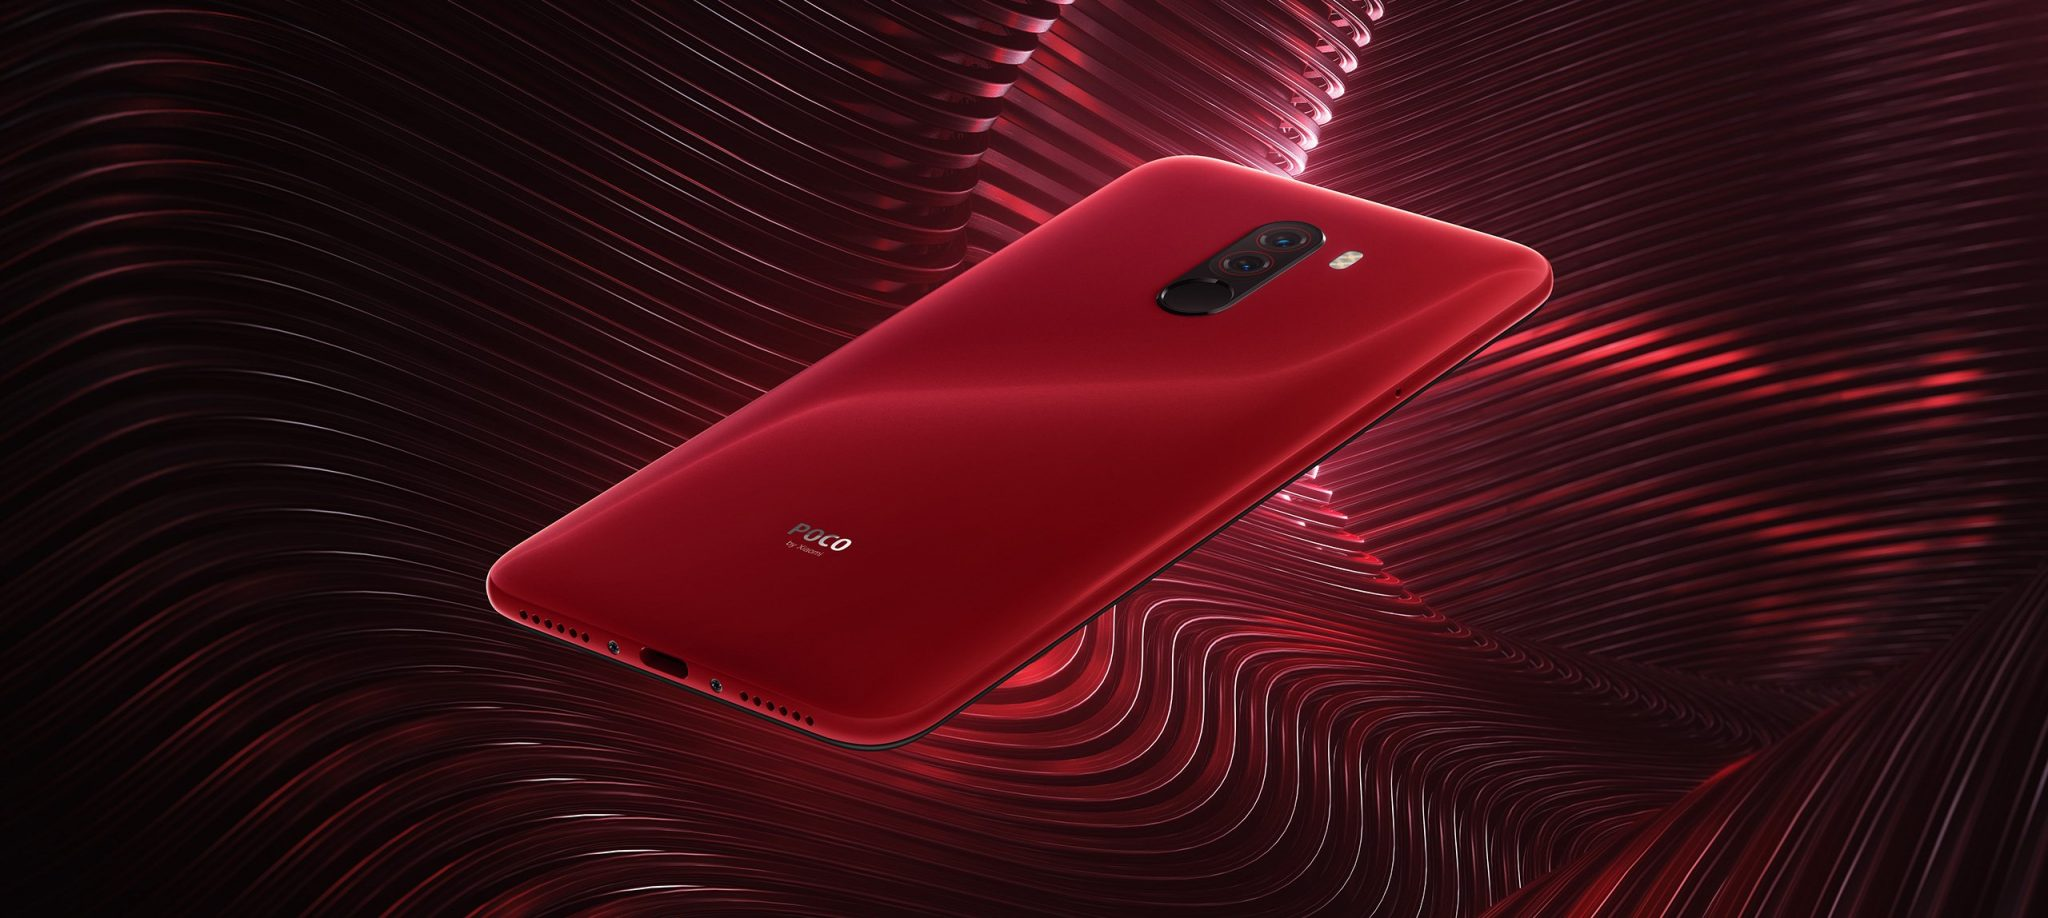 Xiaomi Poco F1 is the cheapest phone you can get with Snapdragon 845 6